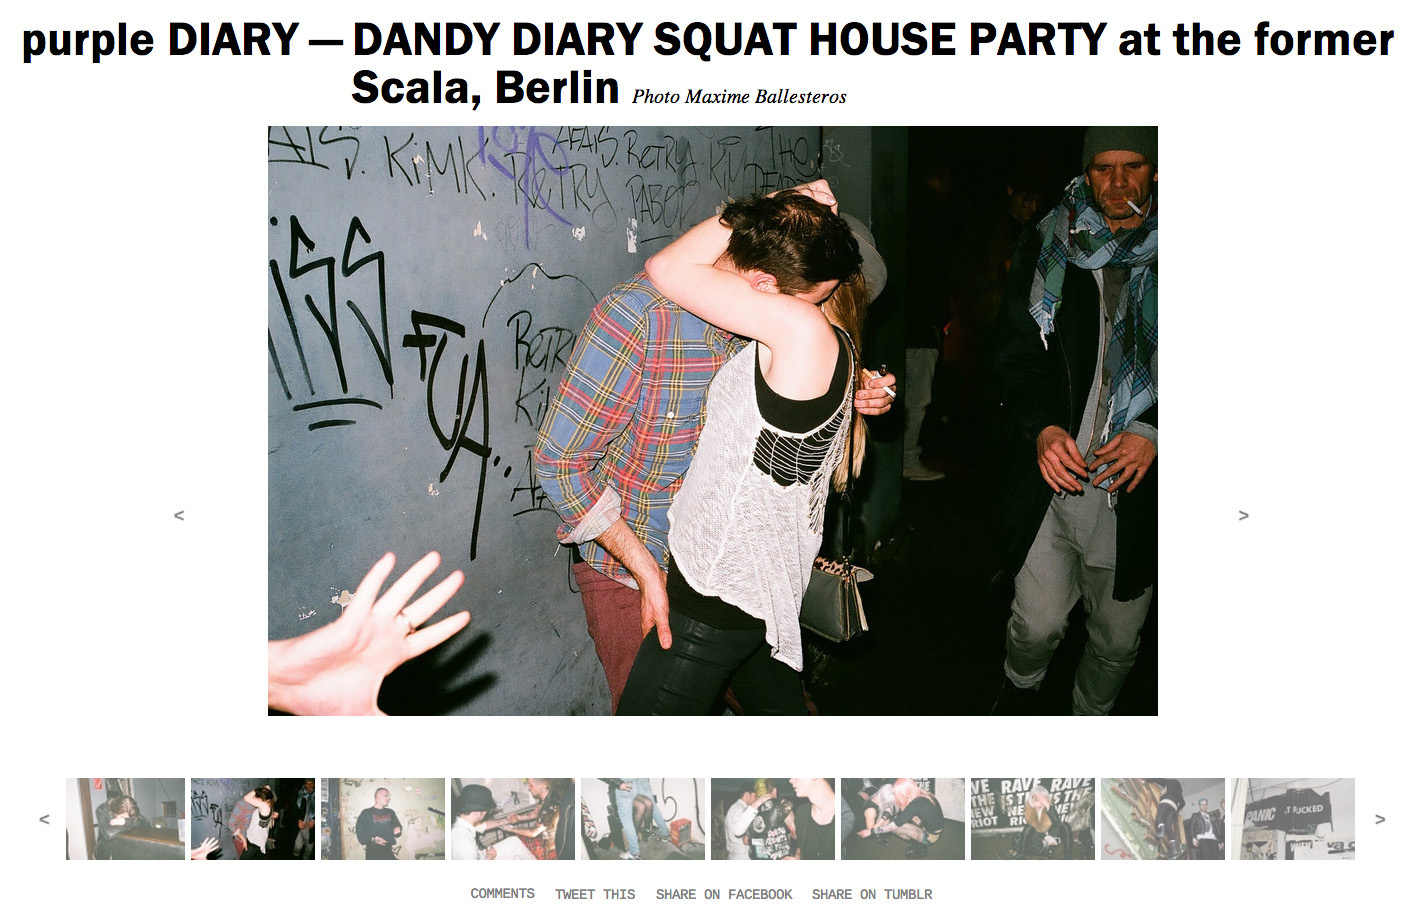 purple DIARY   DANDY DIARY SQUAT HOUSE PARTY at the former Scala  Berlin.jpg